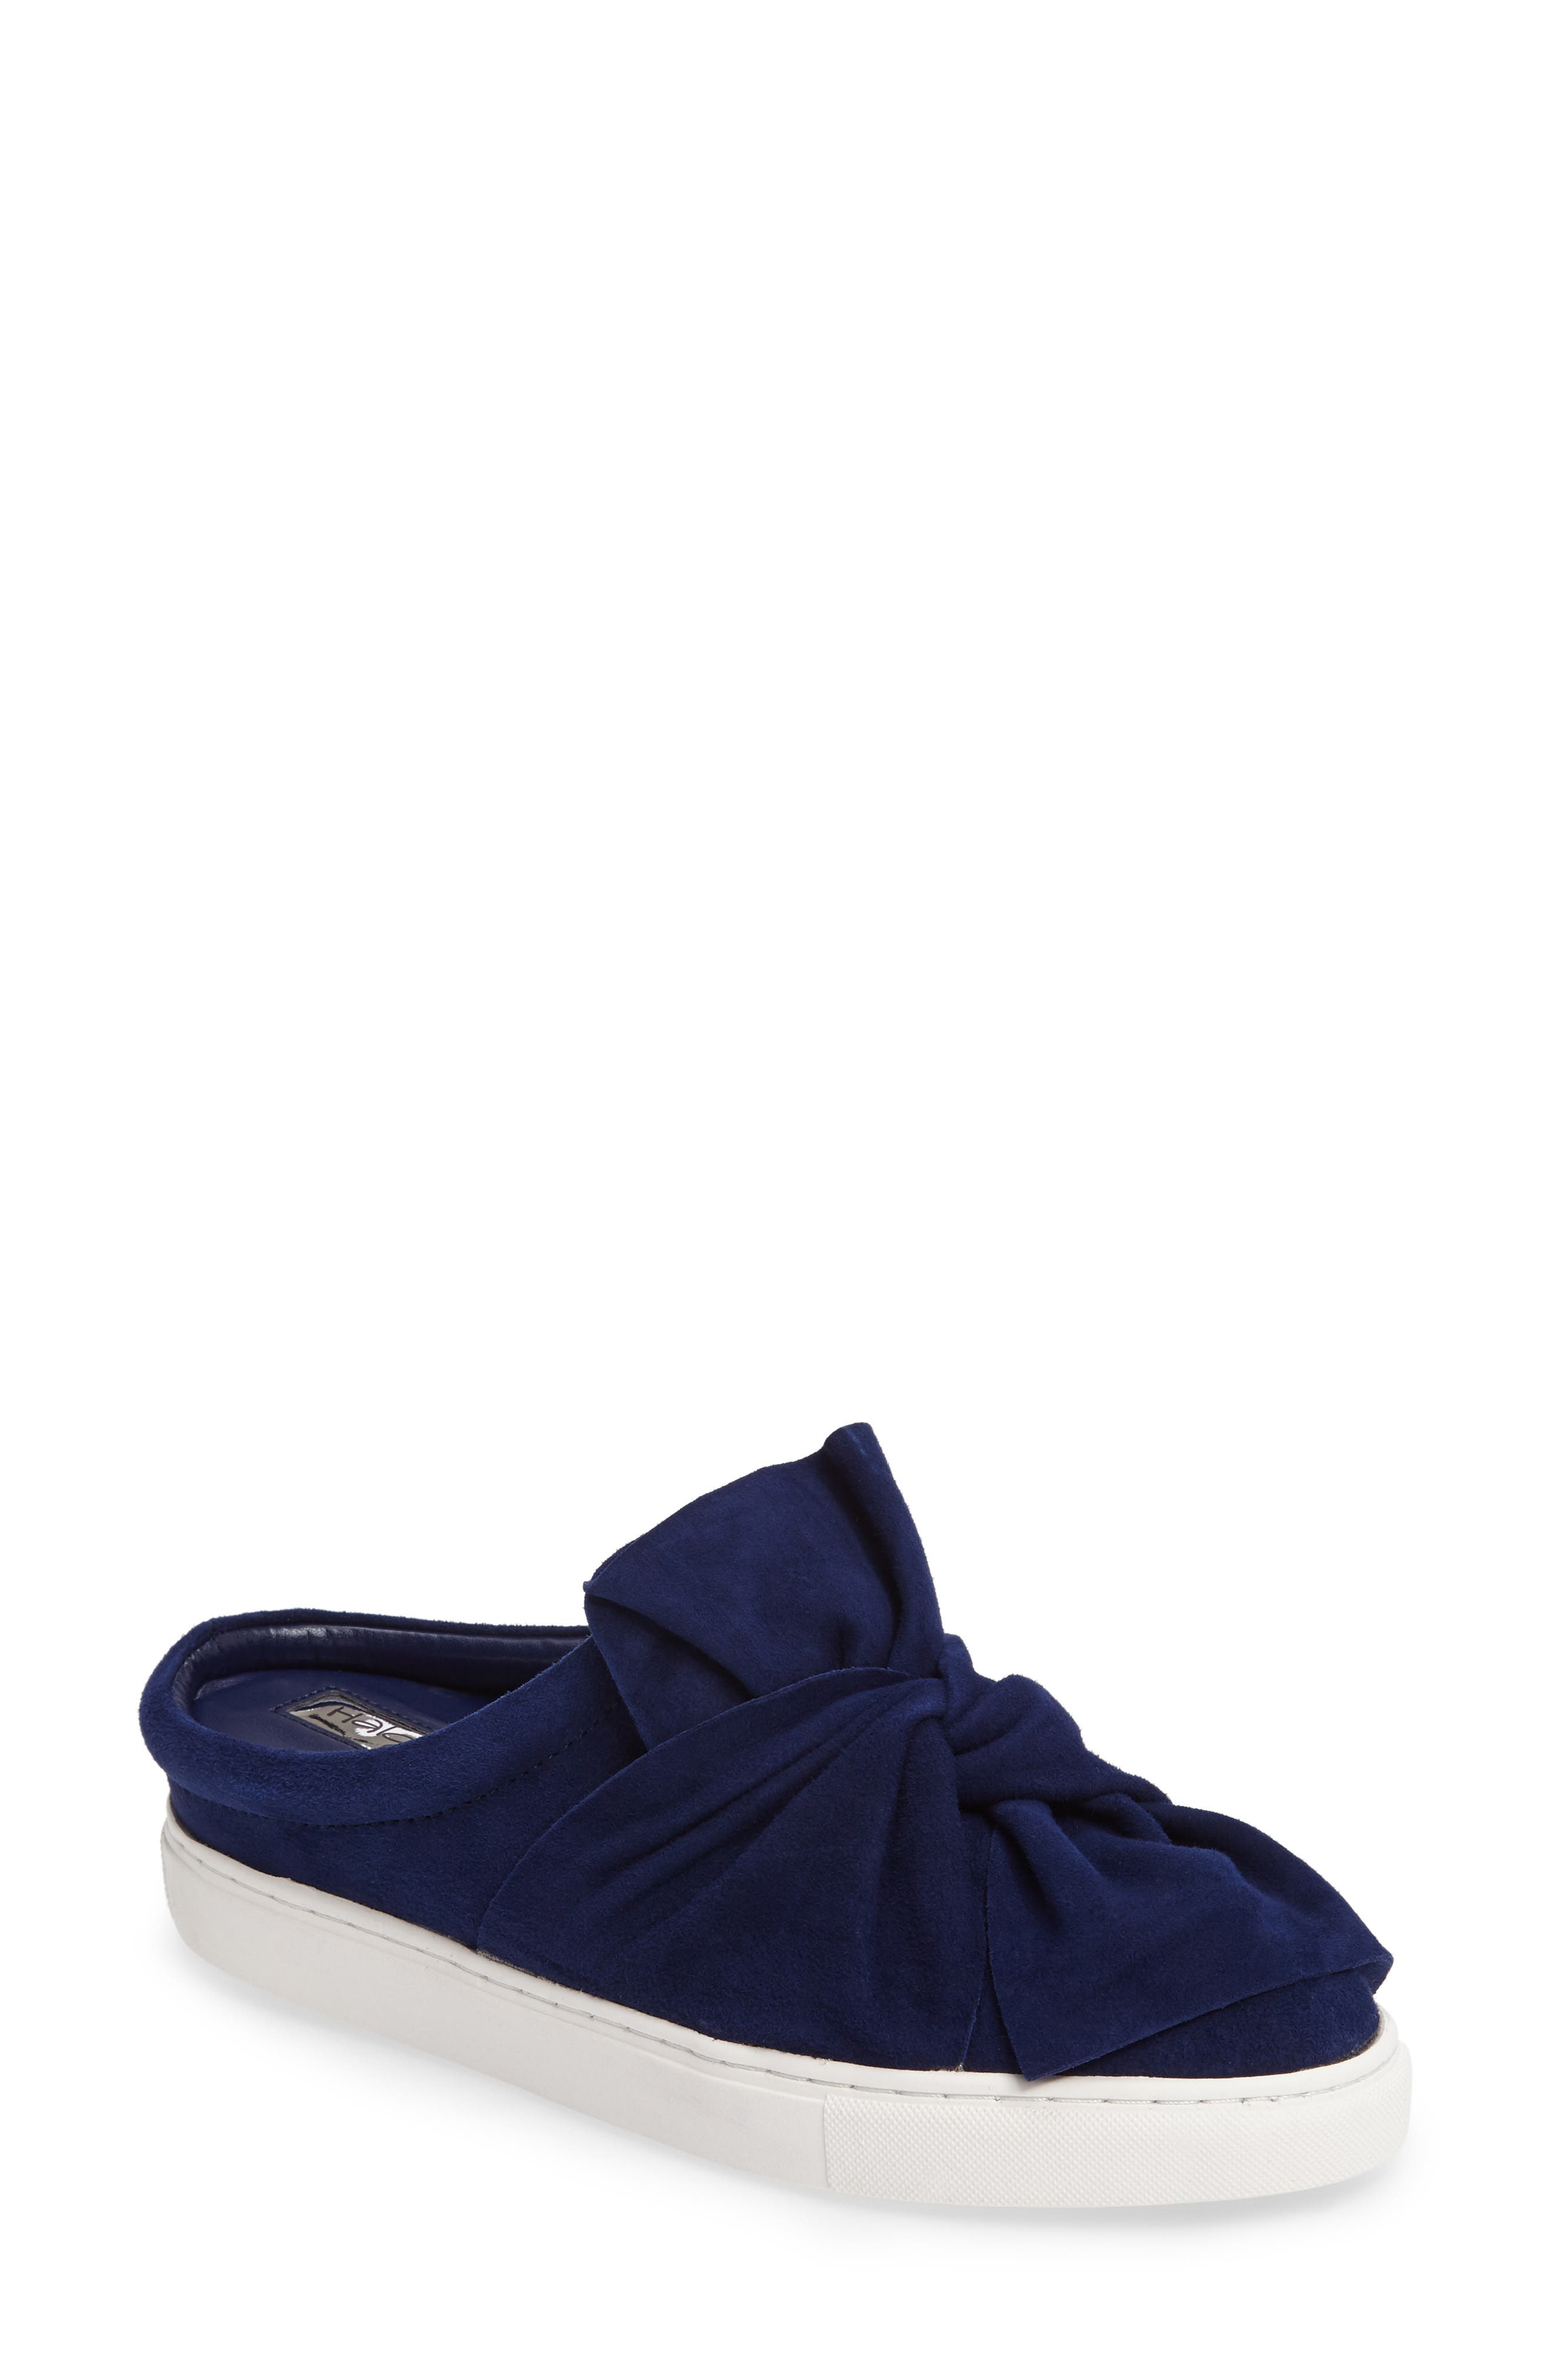 Alternate Image 1 Selected - Halogen® Manny Knotted Slip-On Sneaker (Women)